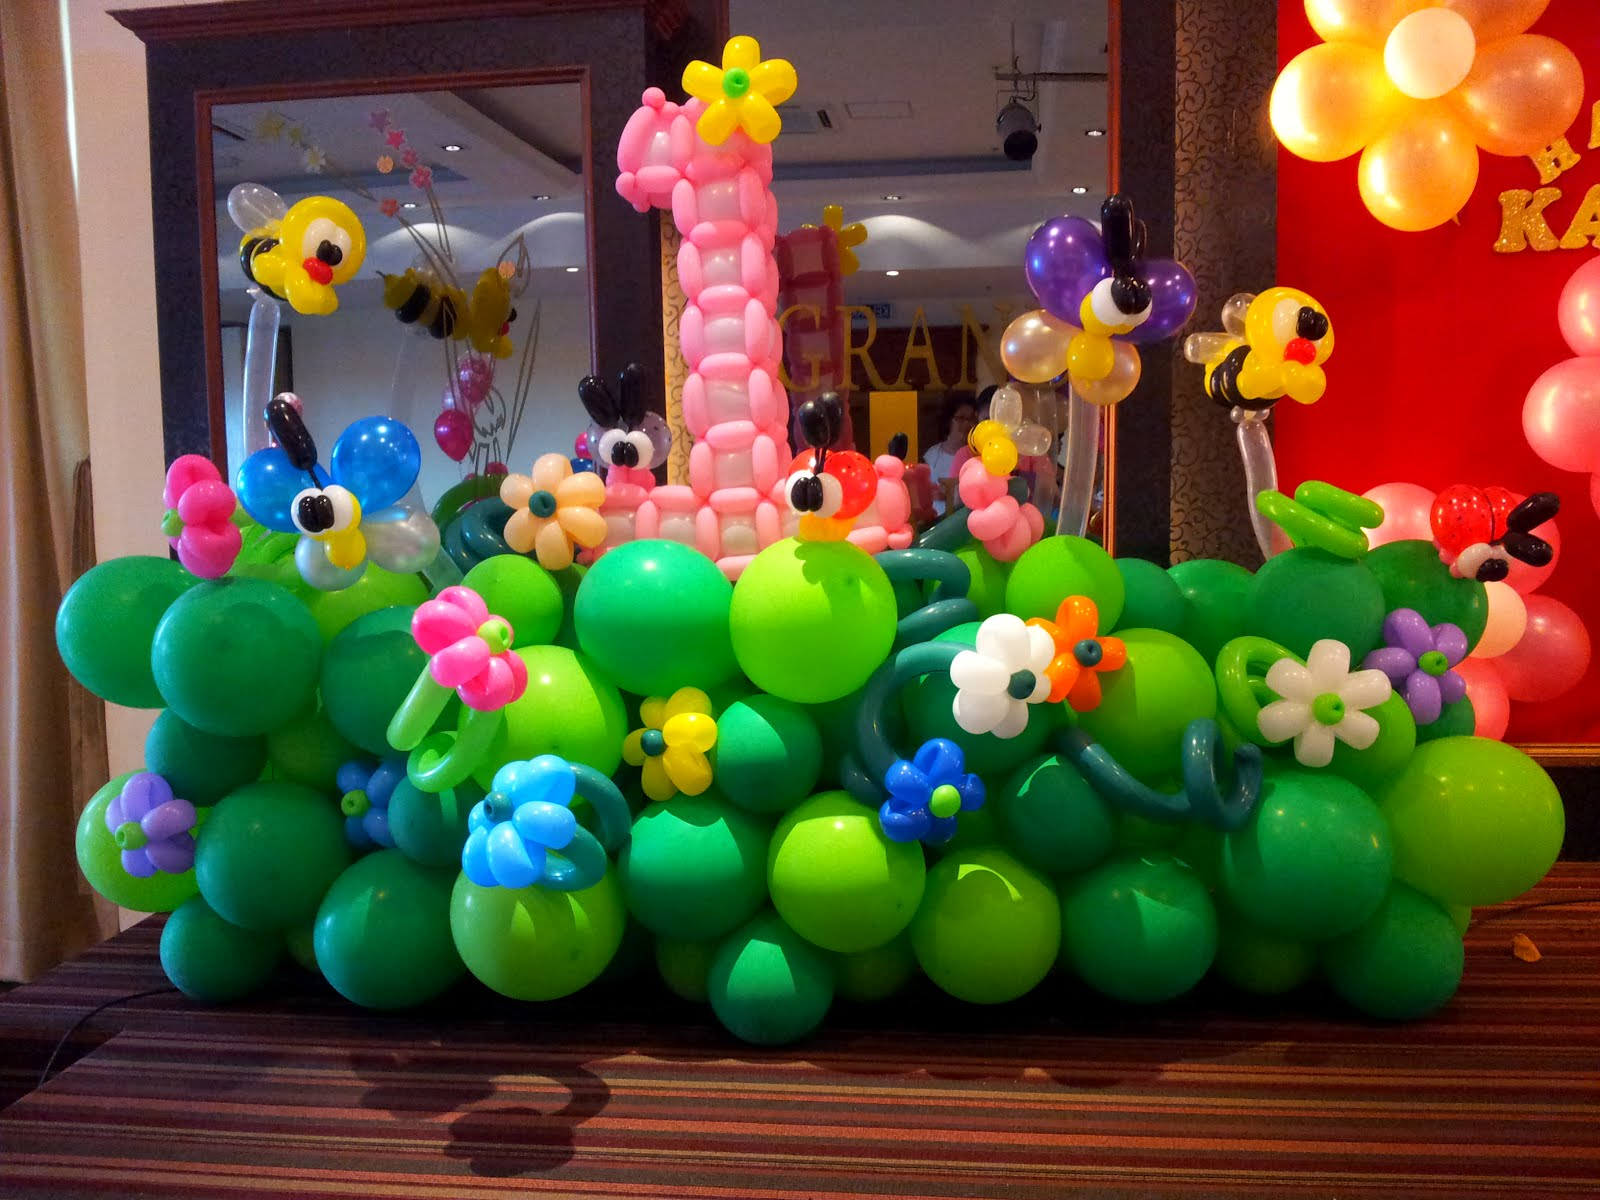 Balloon decoration for birthday party party favors ideas for B day decoration ideas